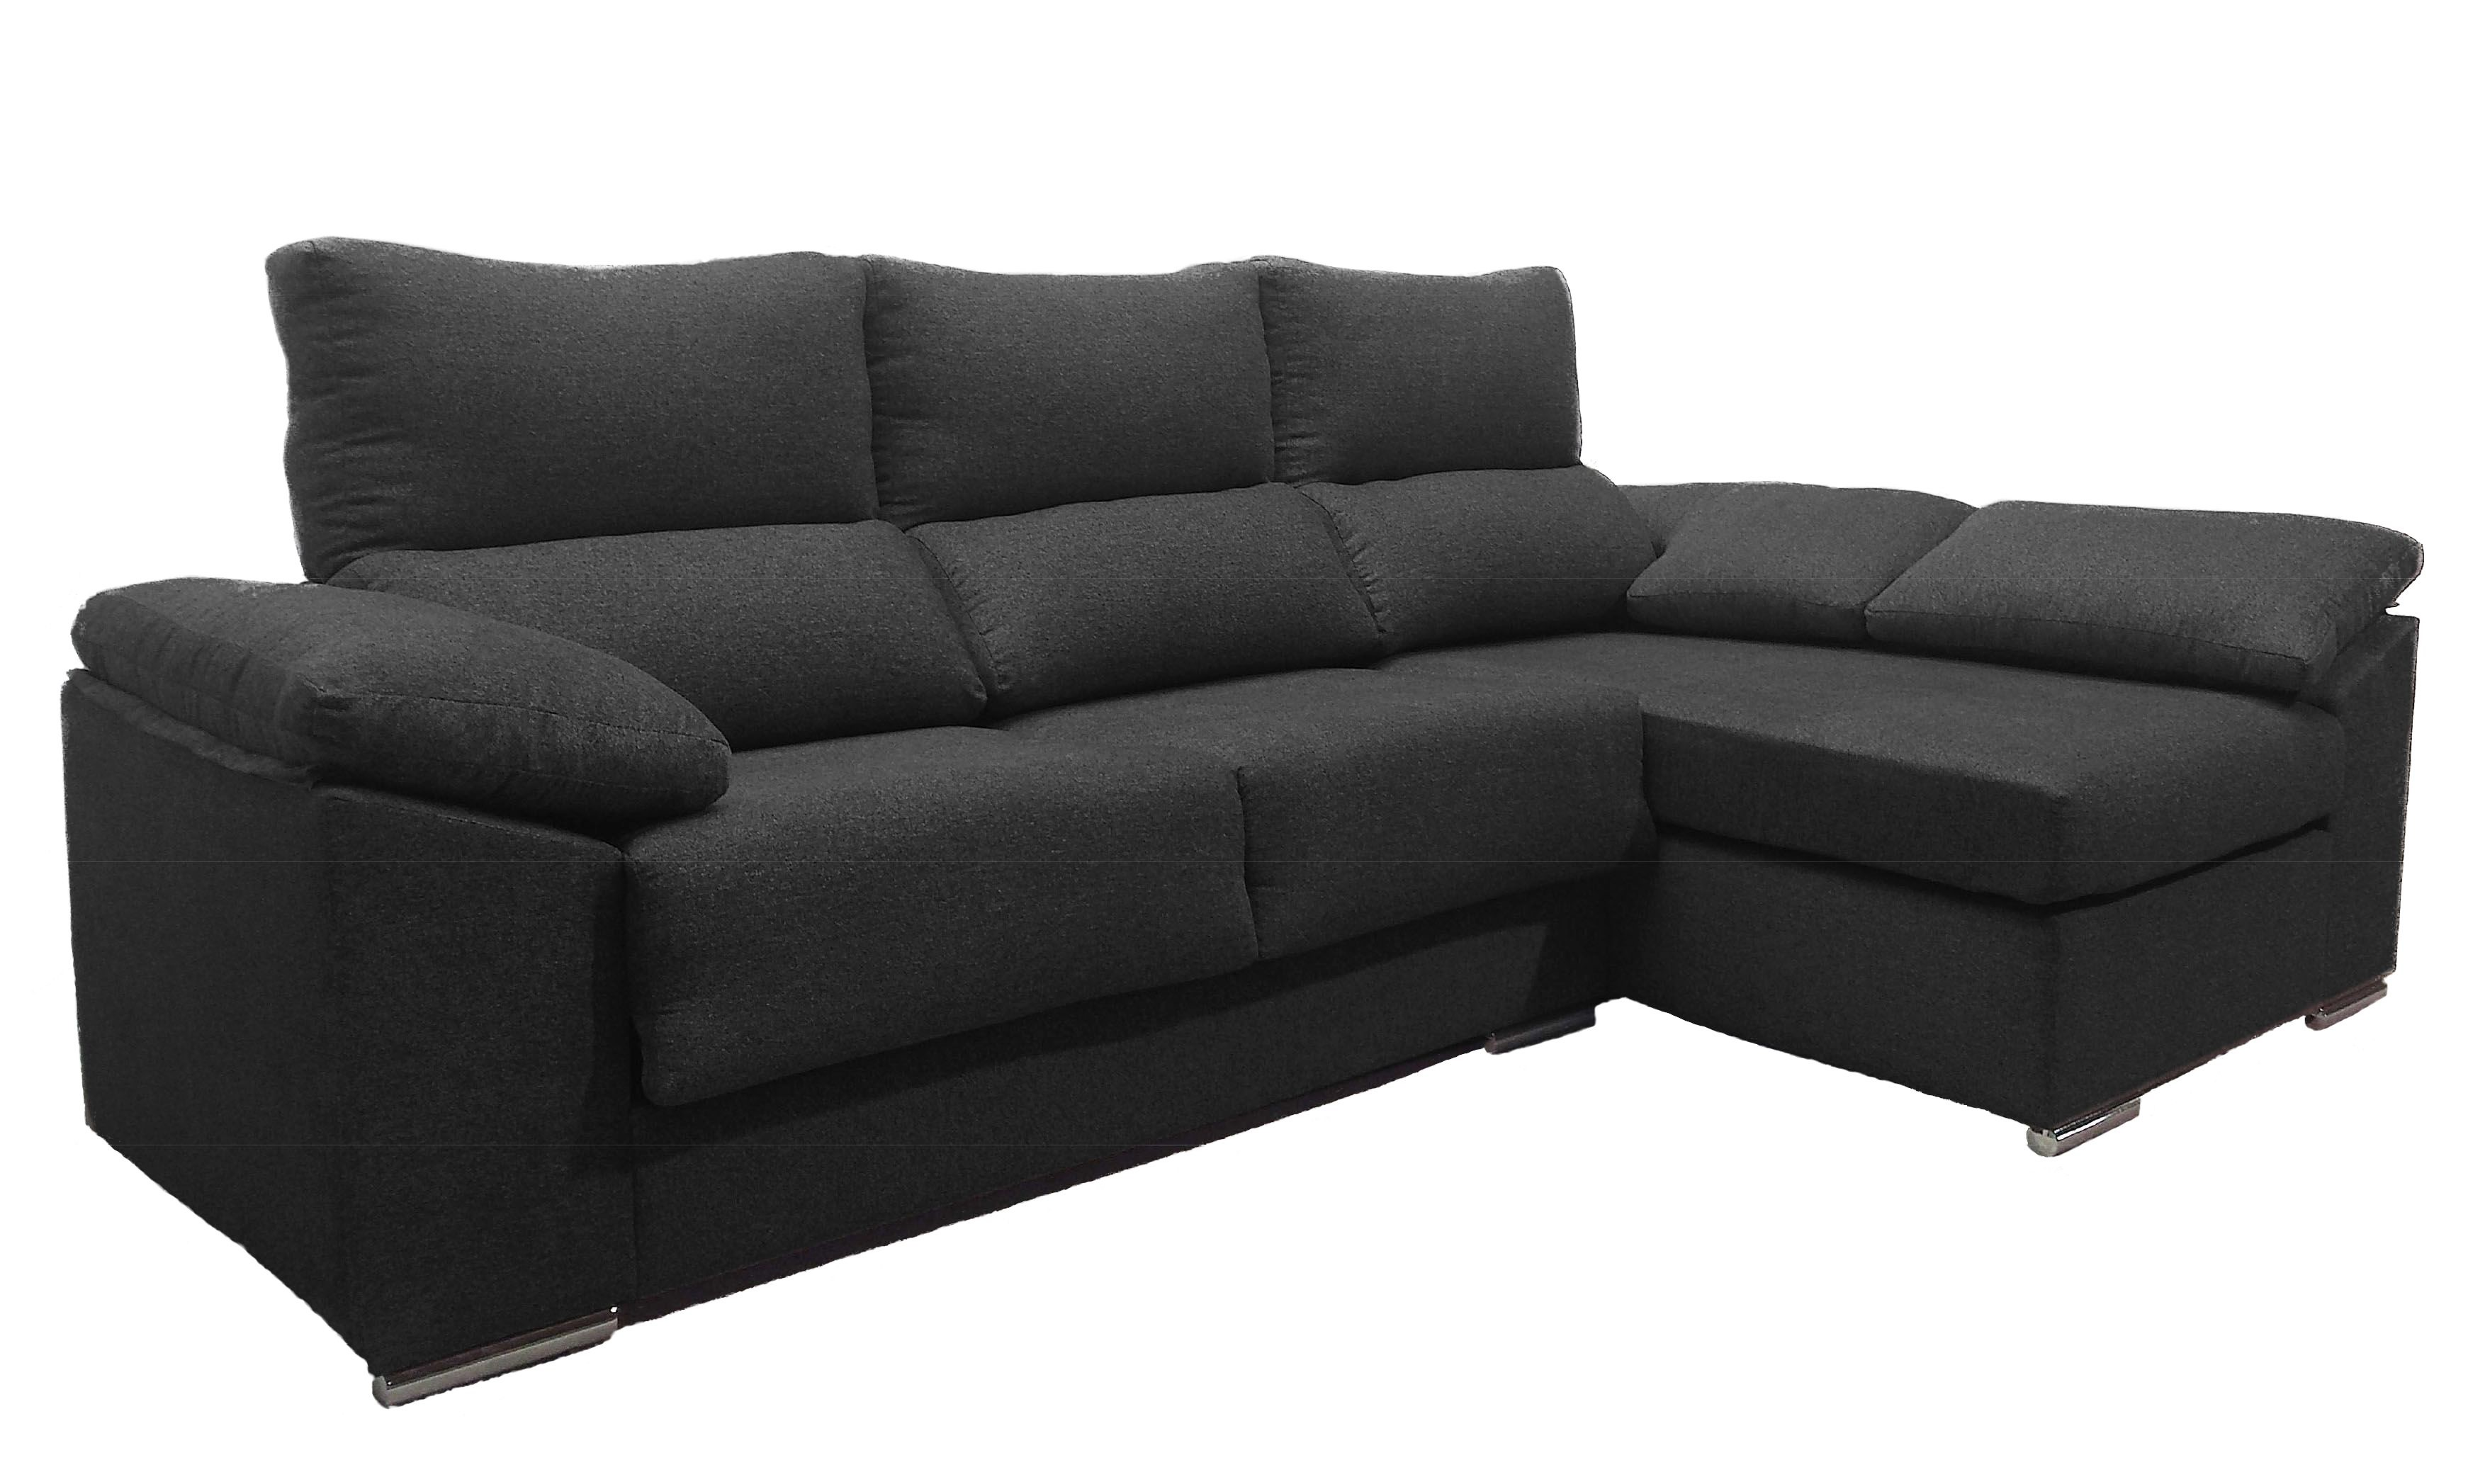 Chaise longue sofa baratos for Sofa piel chaise longue